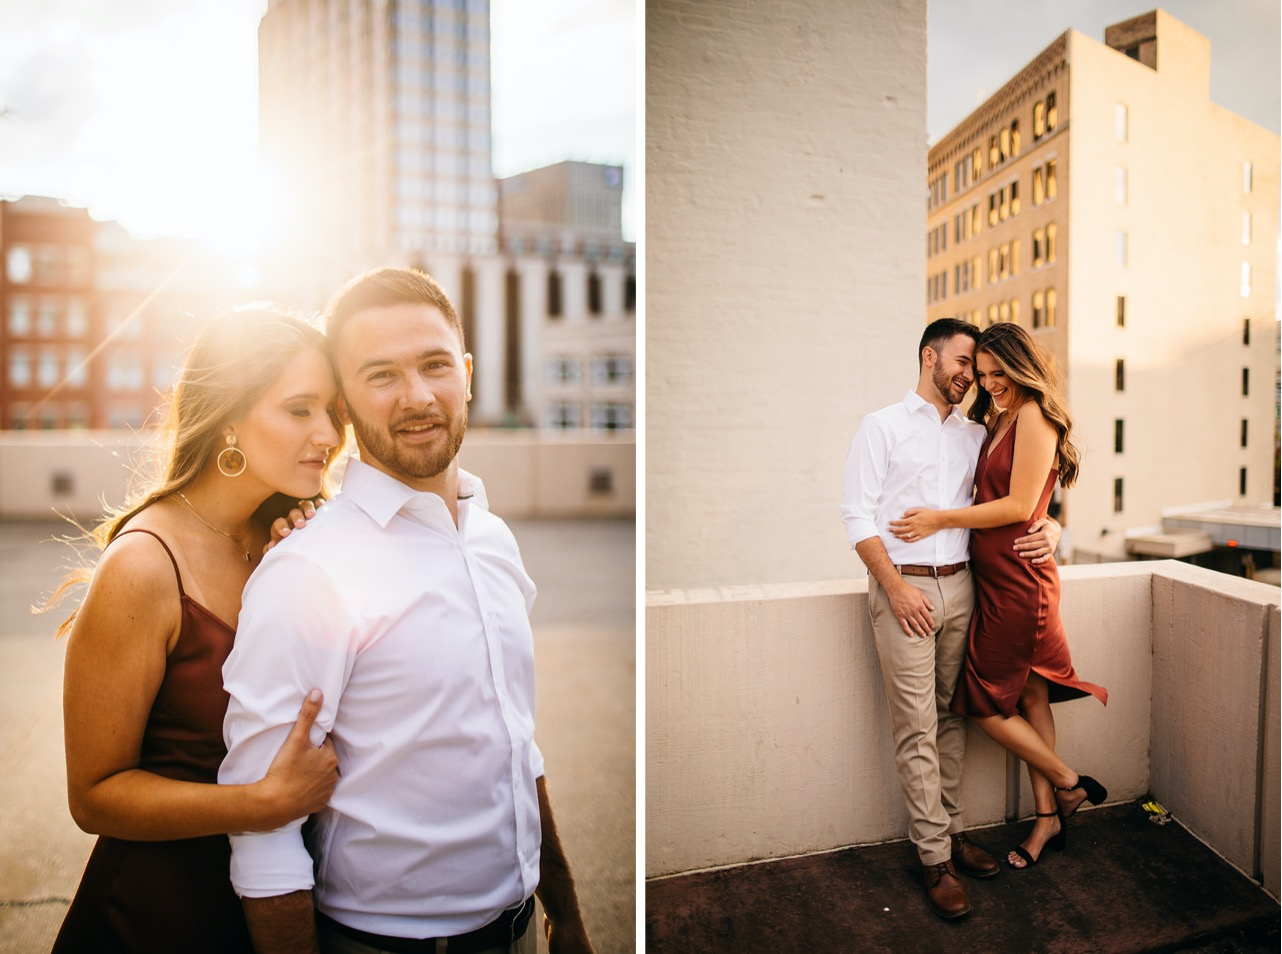 A man puts his arm around his fiance during their engagement session on a downtown Chattanooga rooftop.